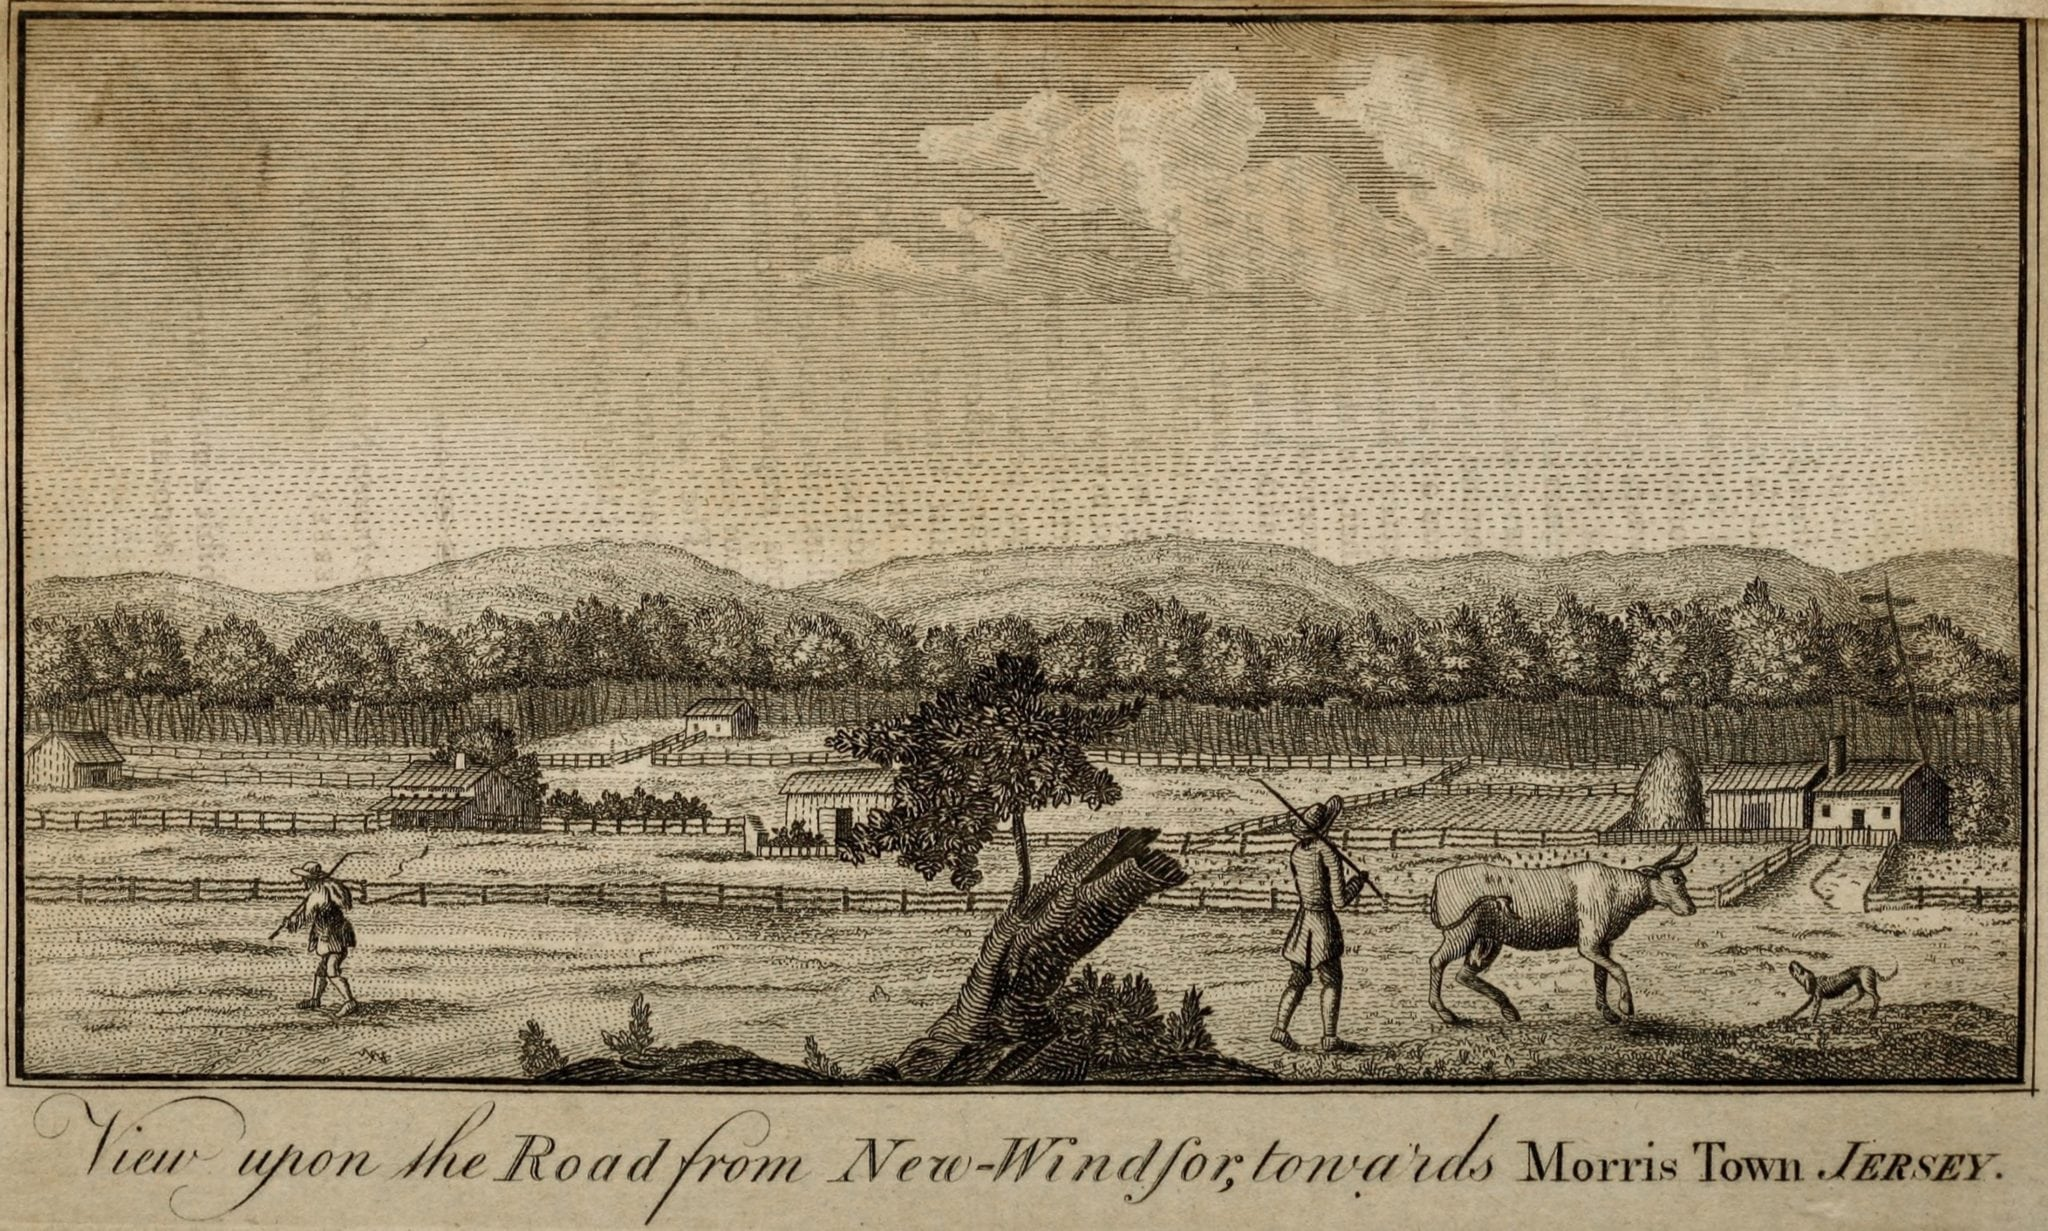 image of morris town history